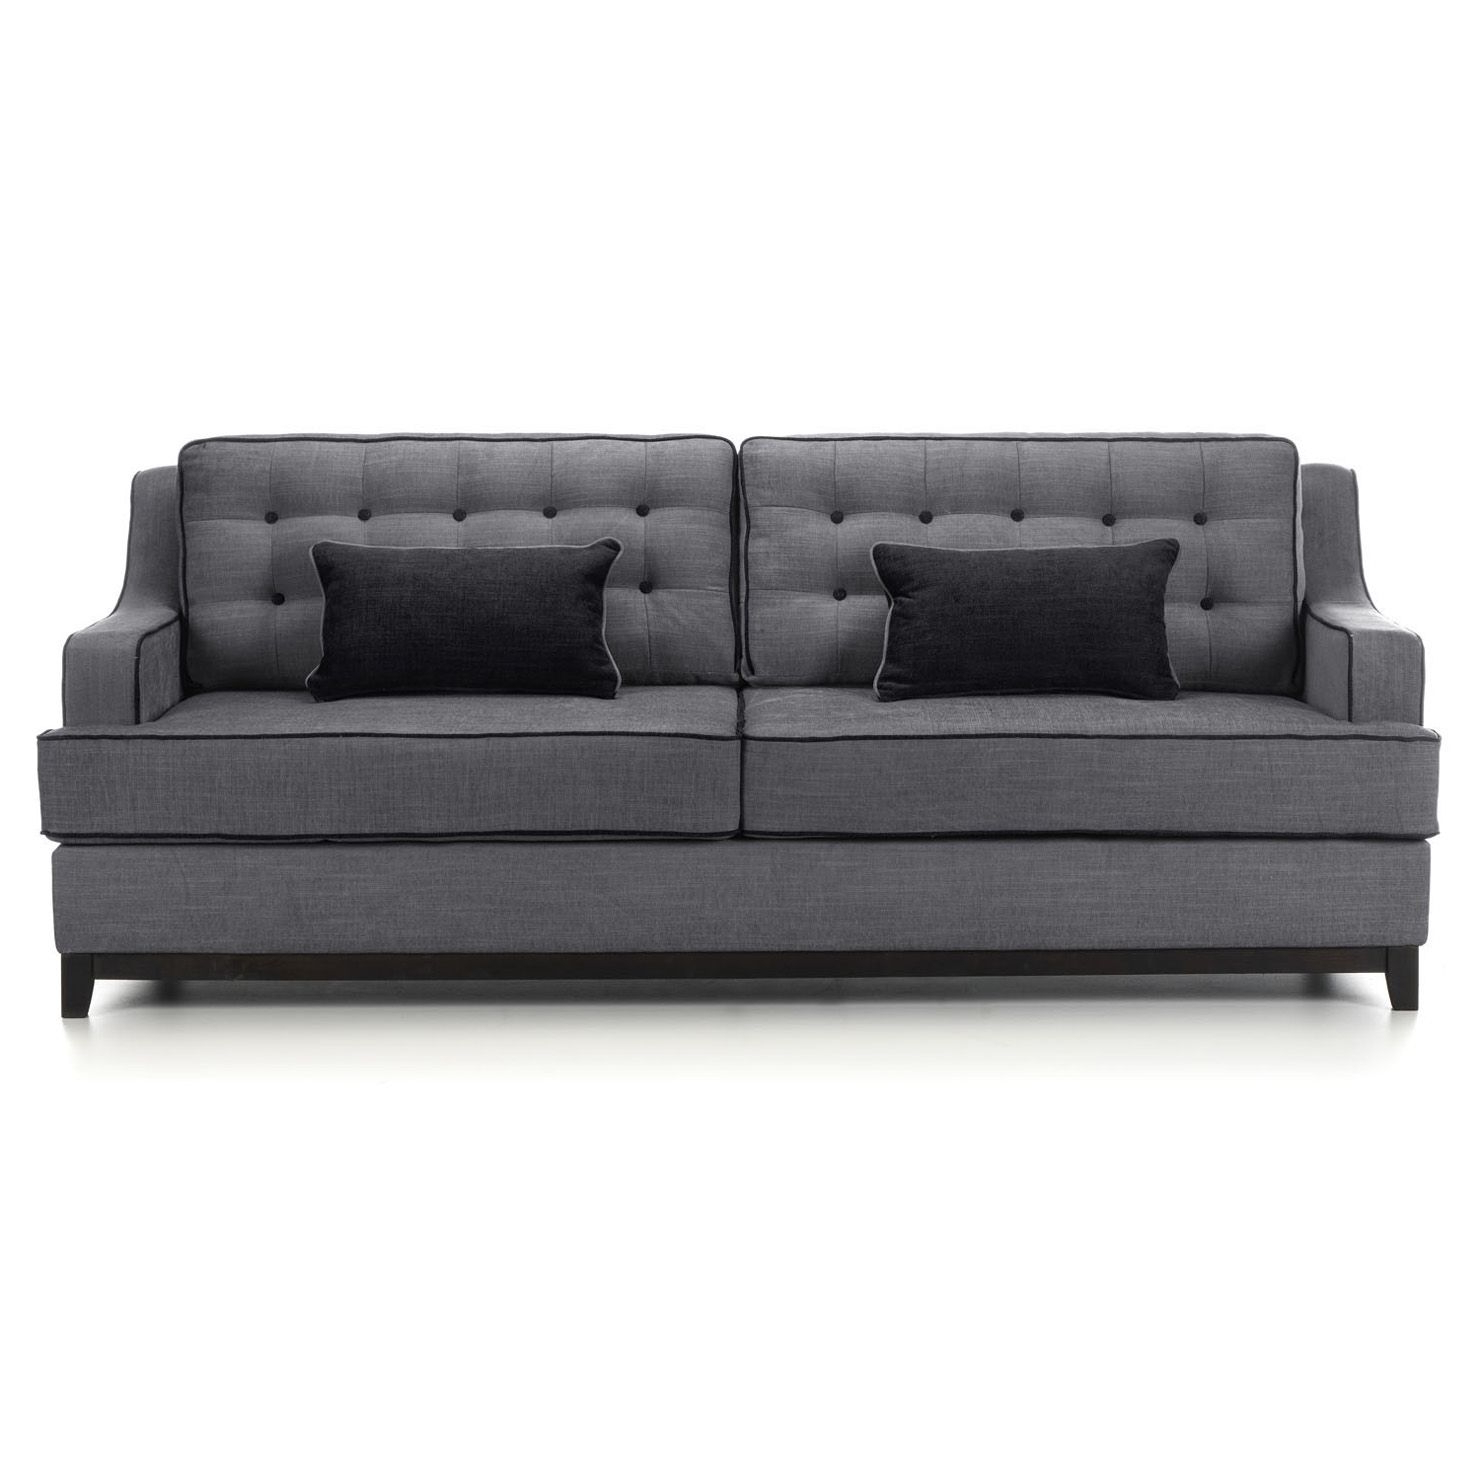 London Dark Grey Sofa Chairs In Fashionable London 3.5 Seater Sofa In Light Grey With Dark Grey Piping With (Gallery 4 of 20)